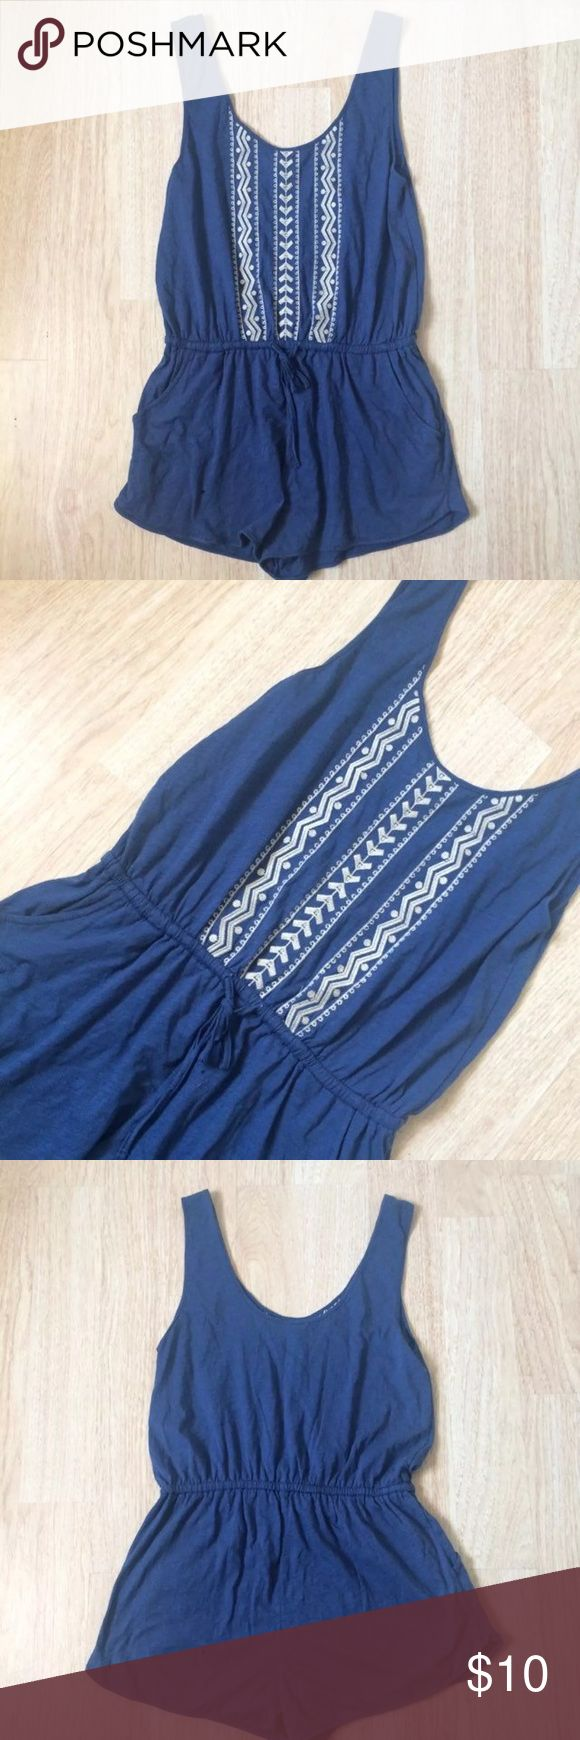 Forever 21 Sleeveless Embroided Romper From forever 21 size medium blue Sleeveless Romper very cute and comfortable with an elastic waistband has pockets on the sides has some nice Tribal Embroidery in the Front great for the beach and the summery bundle if interested    Tags Hollister American Eagle American Apparel Misguided Brandy Melville Forever 21 H&M Free People Asos Urban Outfitters Adidas Topshop Zara Tommy Hilfiger Guess Calvin Klein revolve lulus Tobi Levis Pink Victoria Secret…